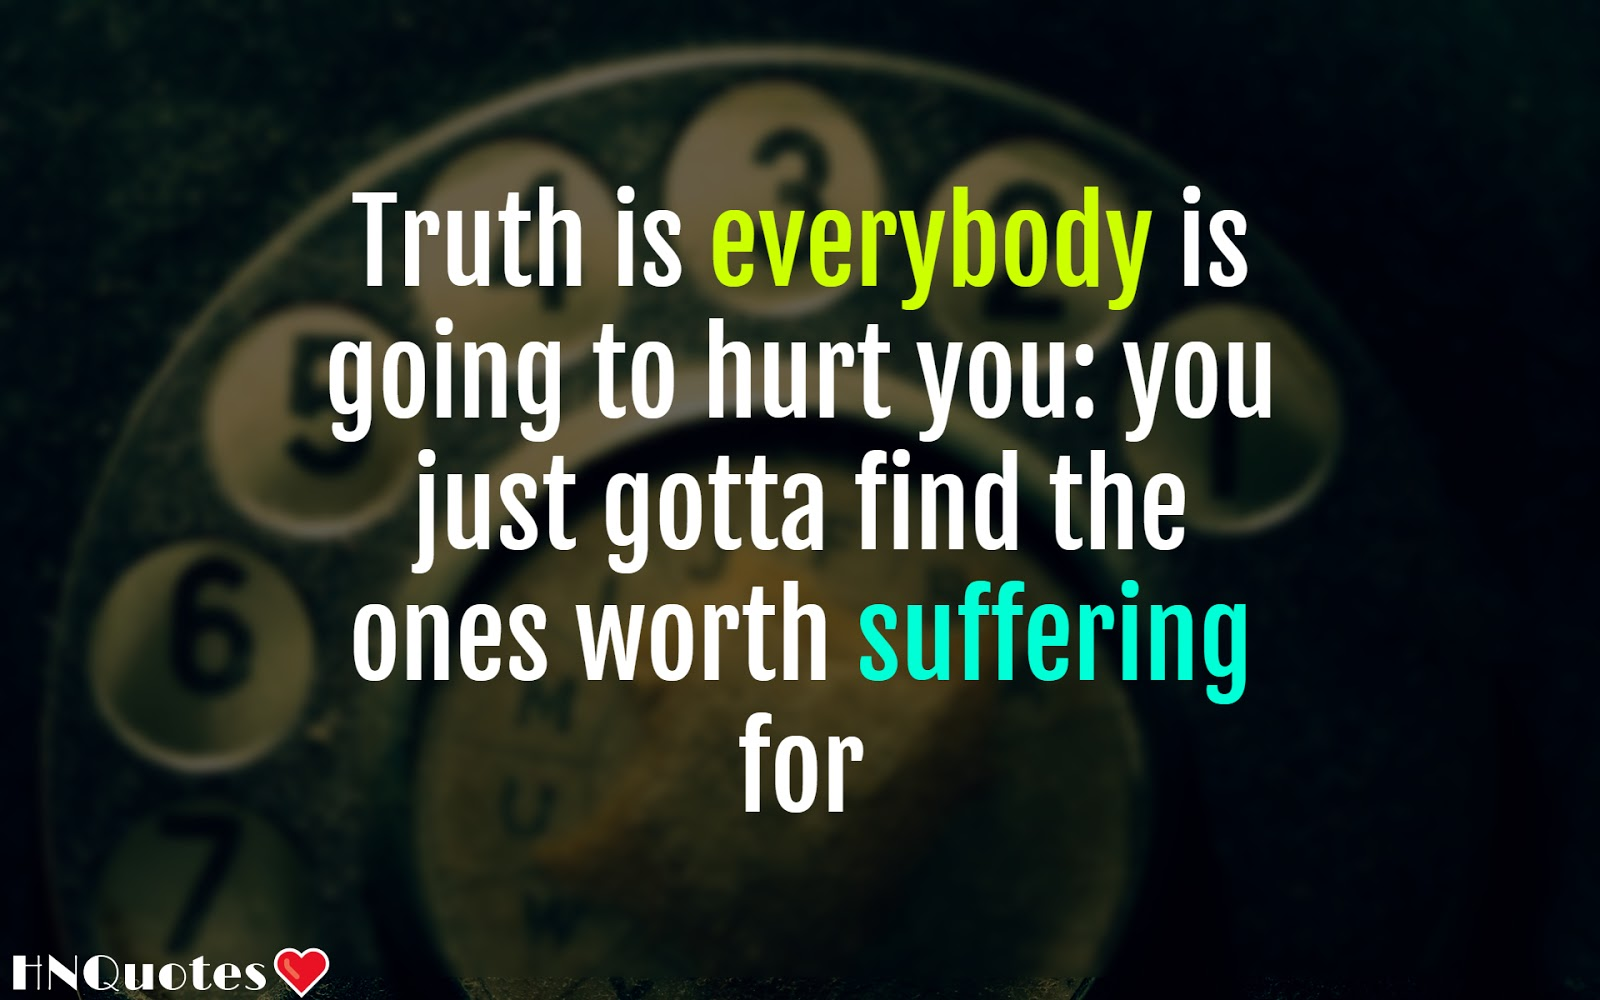 Sad-&-Emotional-Quotes-on-Life-77-Best-Emotional-Quotes[HNQuotes]